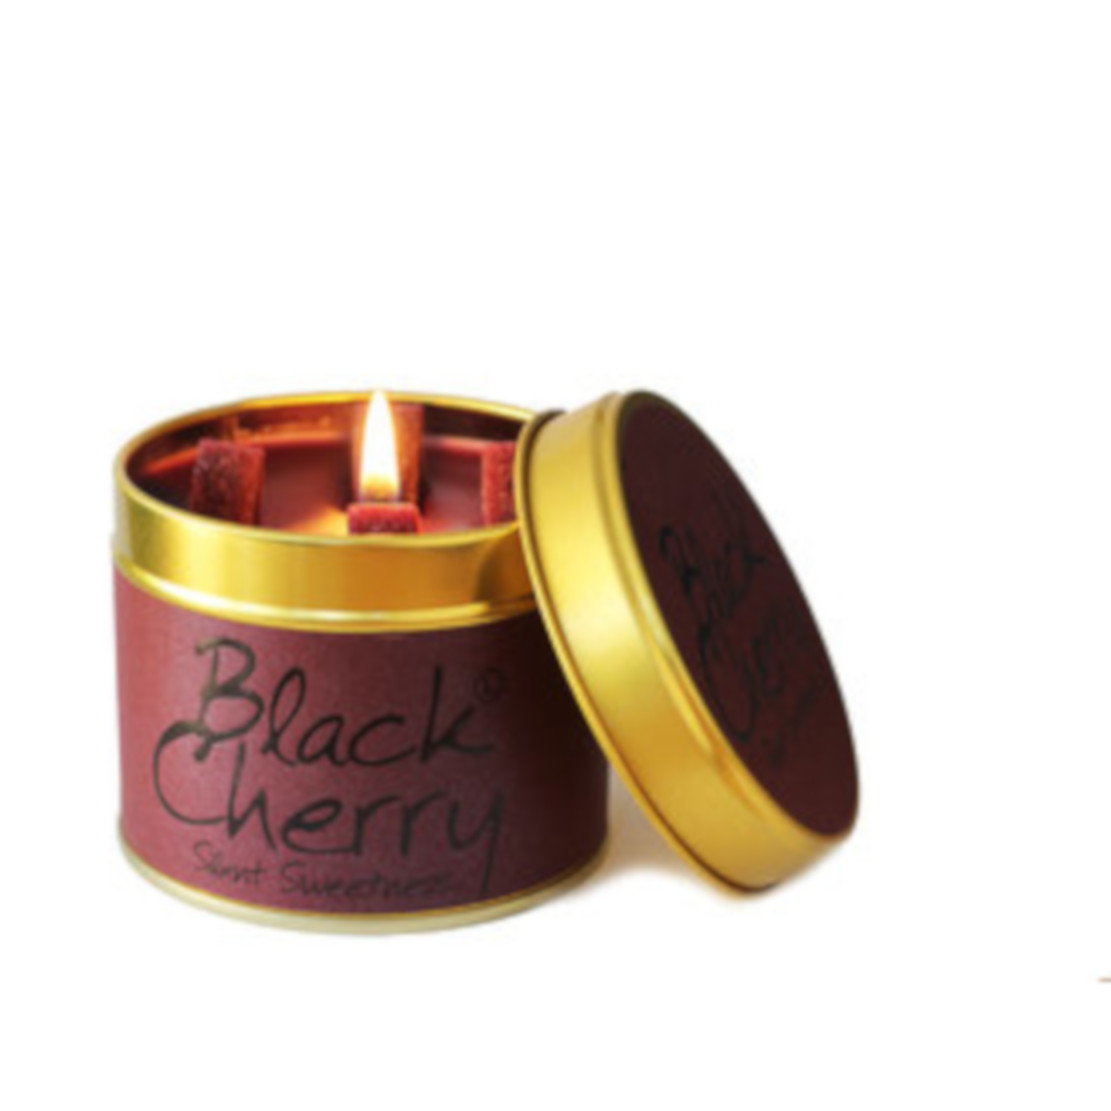 Lily Flame Black Cherry Tin candle